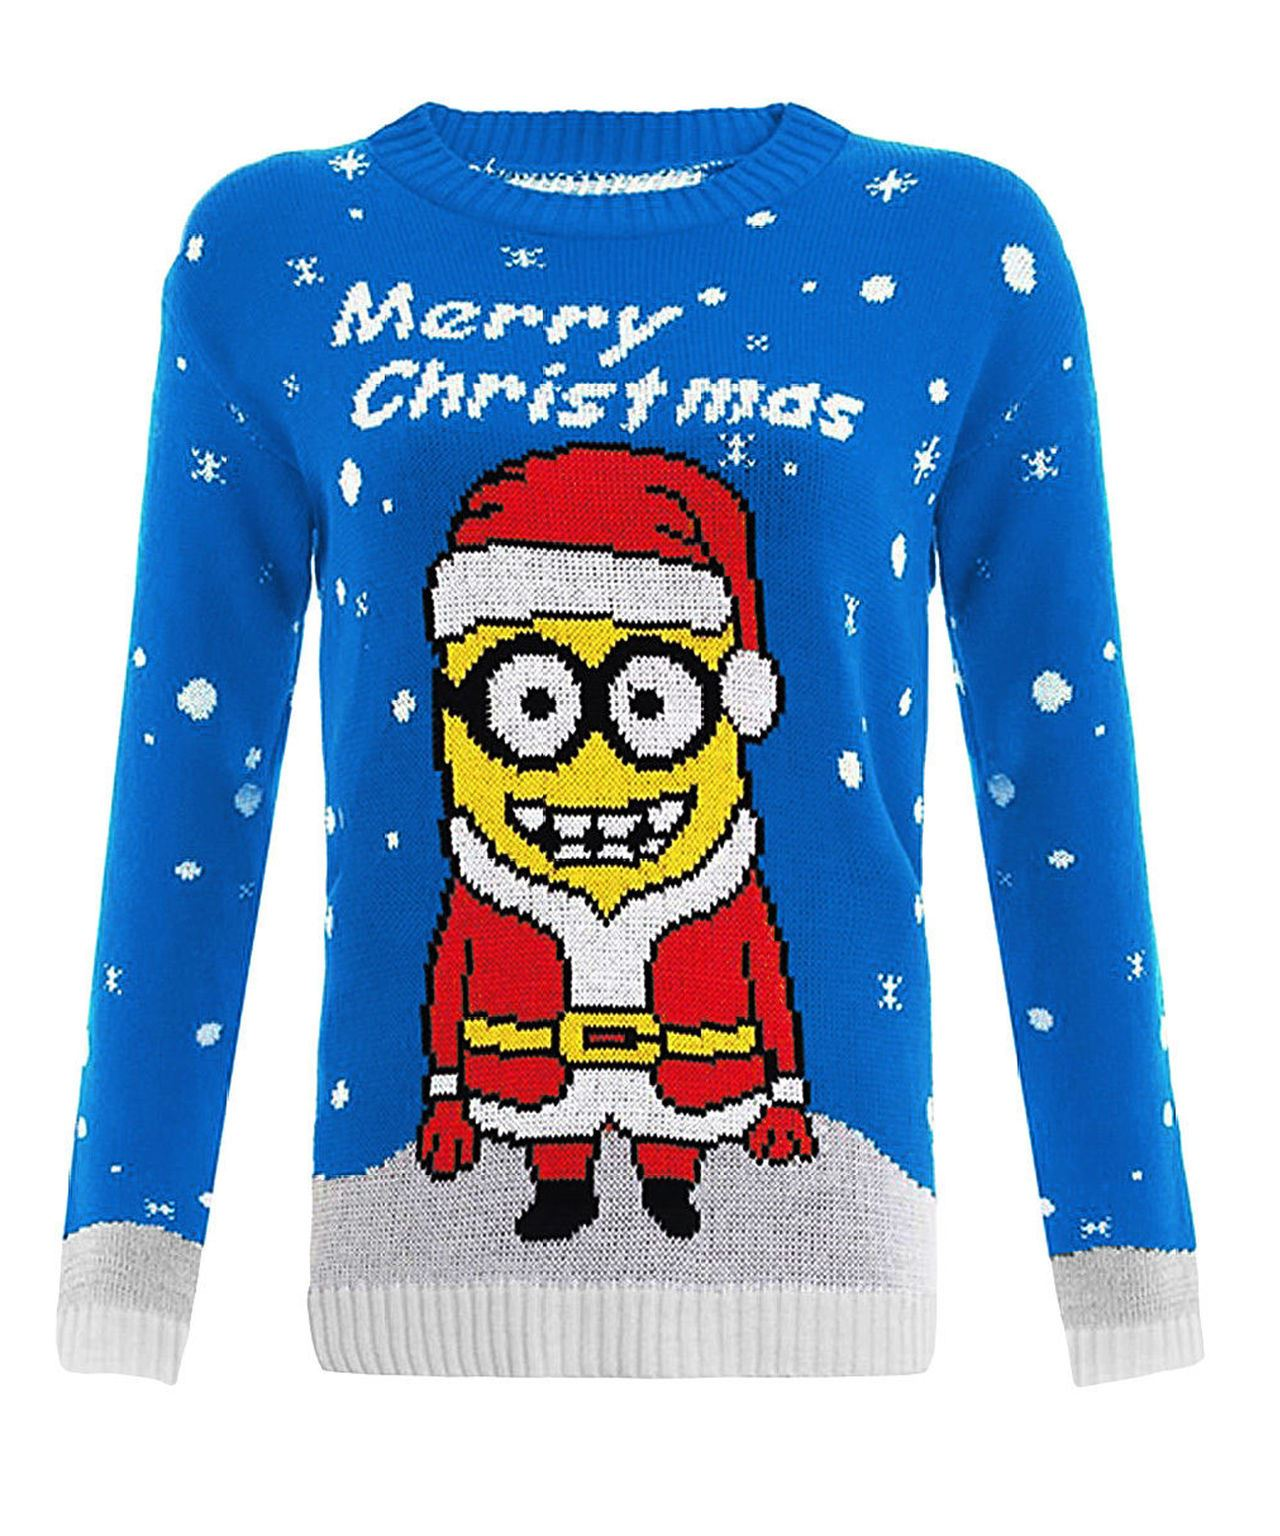 Knitting Pattern For Minion Jumper : Women Ladies Knitted Kids Girls Boys Minion Christmas Xmas ...